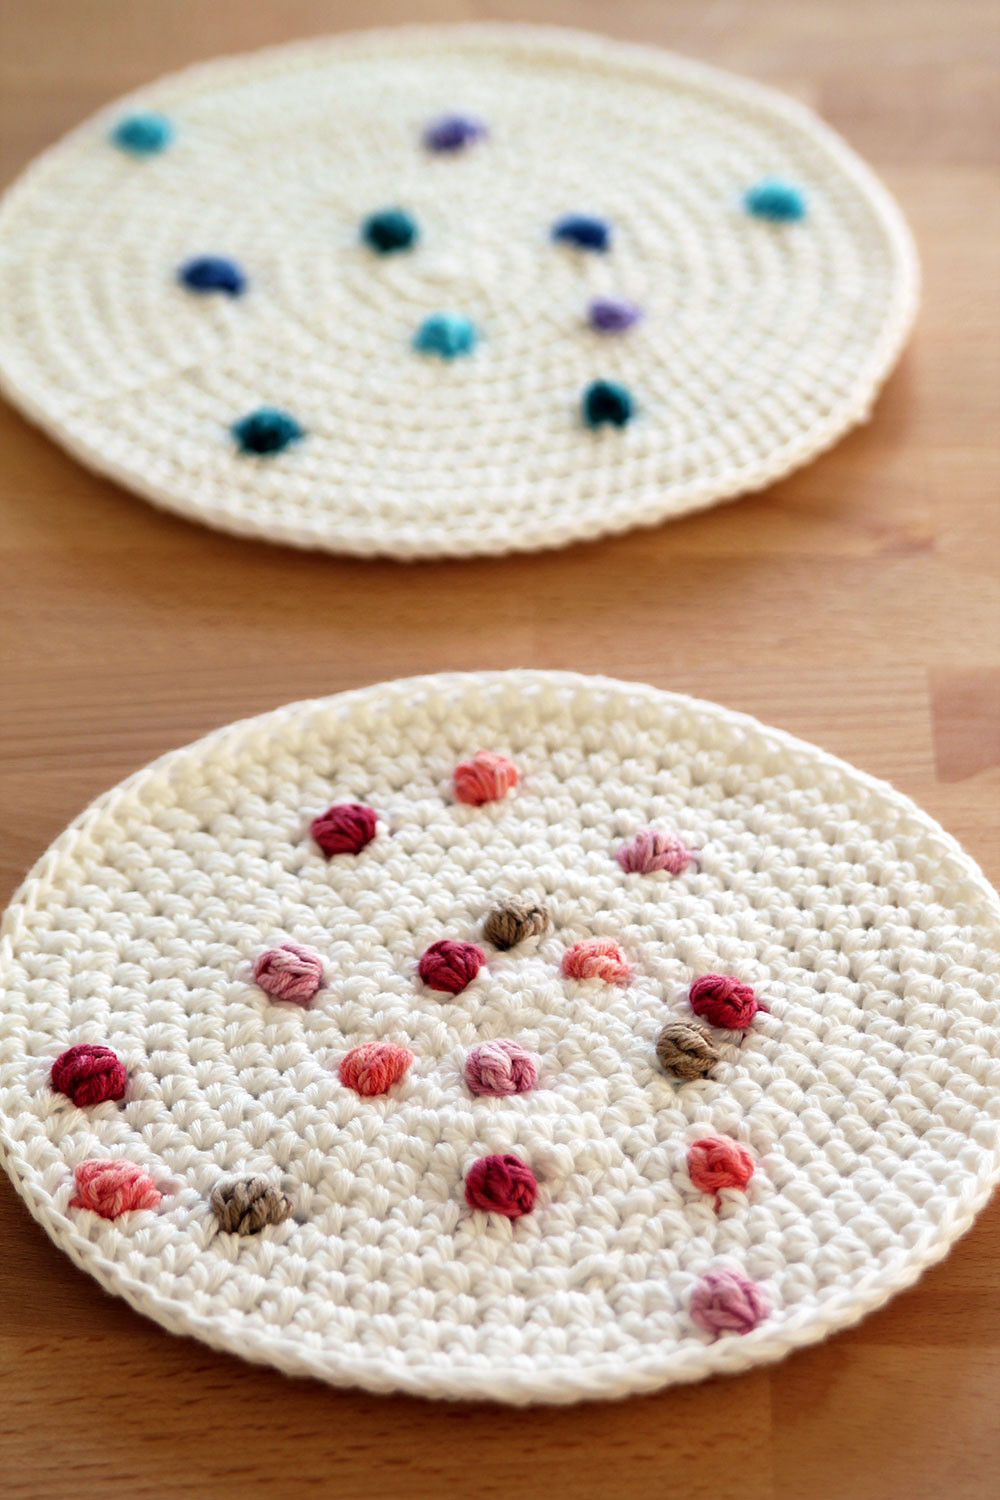 Crochet Potholder Pattern Luxury Free Crochet Pattern for Sprinkle Potholder or Hotpad Eng Of Amazing 43 Pictures Crochet Potholder Pattern